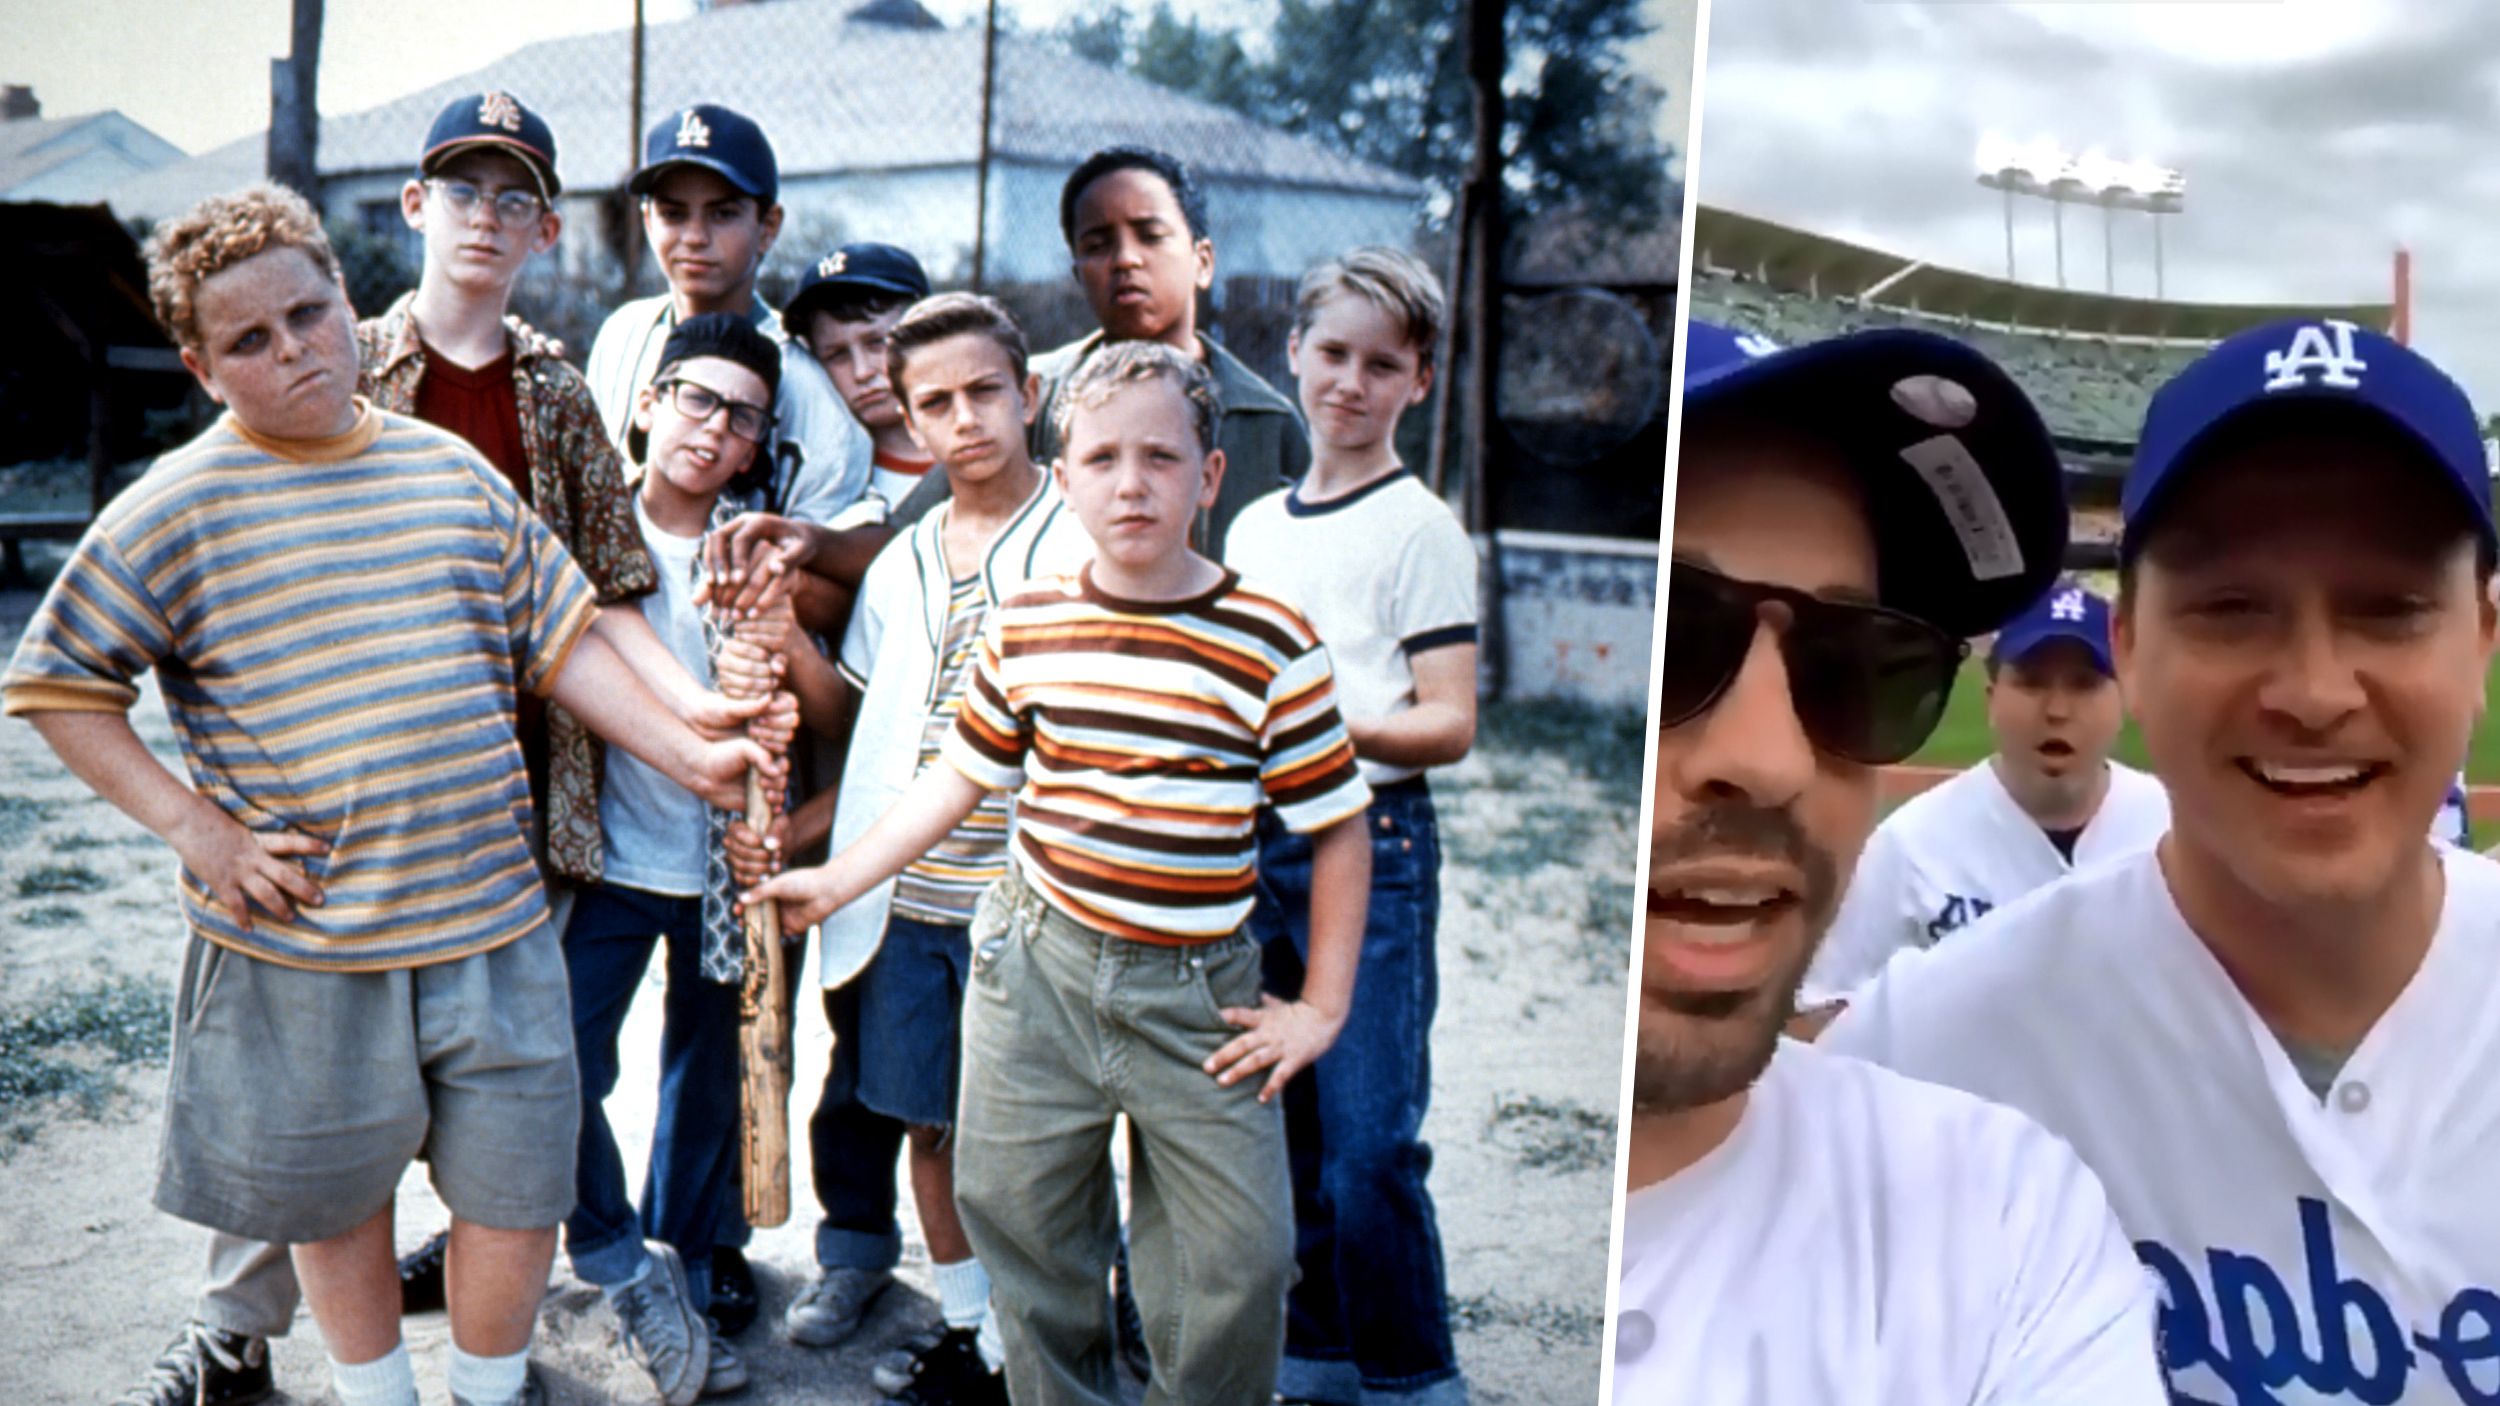 b042e1709 'The Sandlot' cast reunites (and takes to the field) for 25th anniversary!